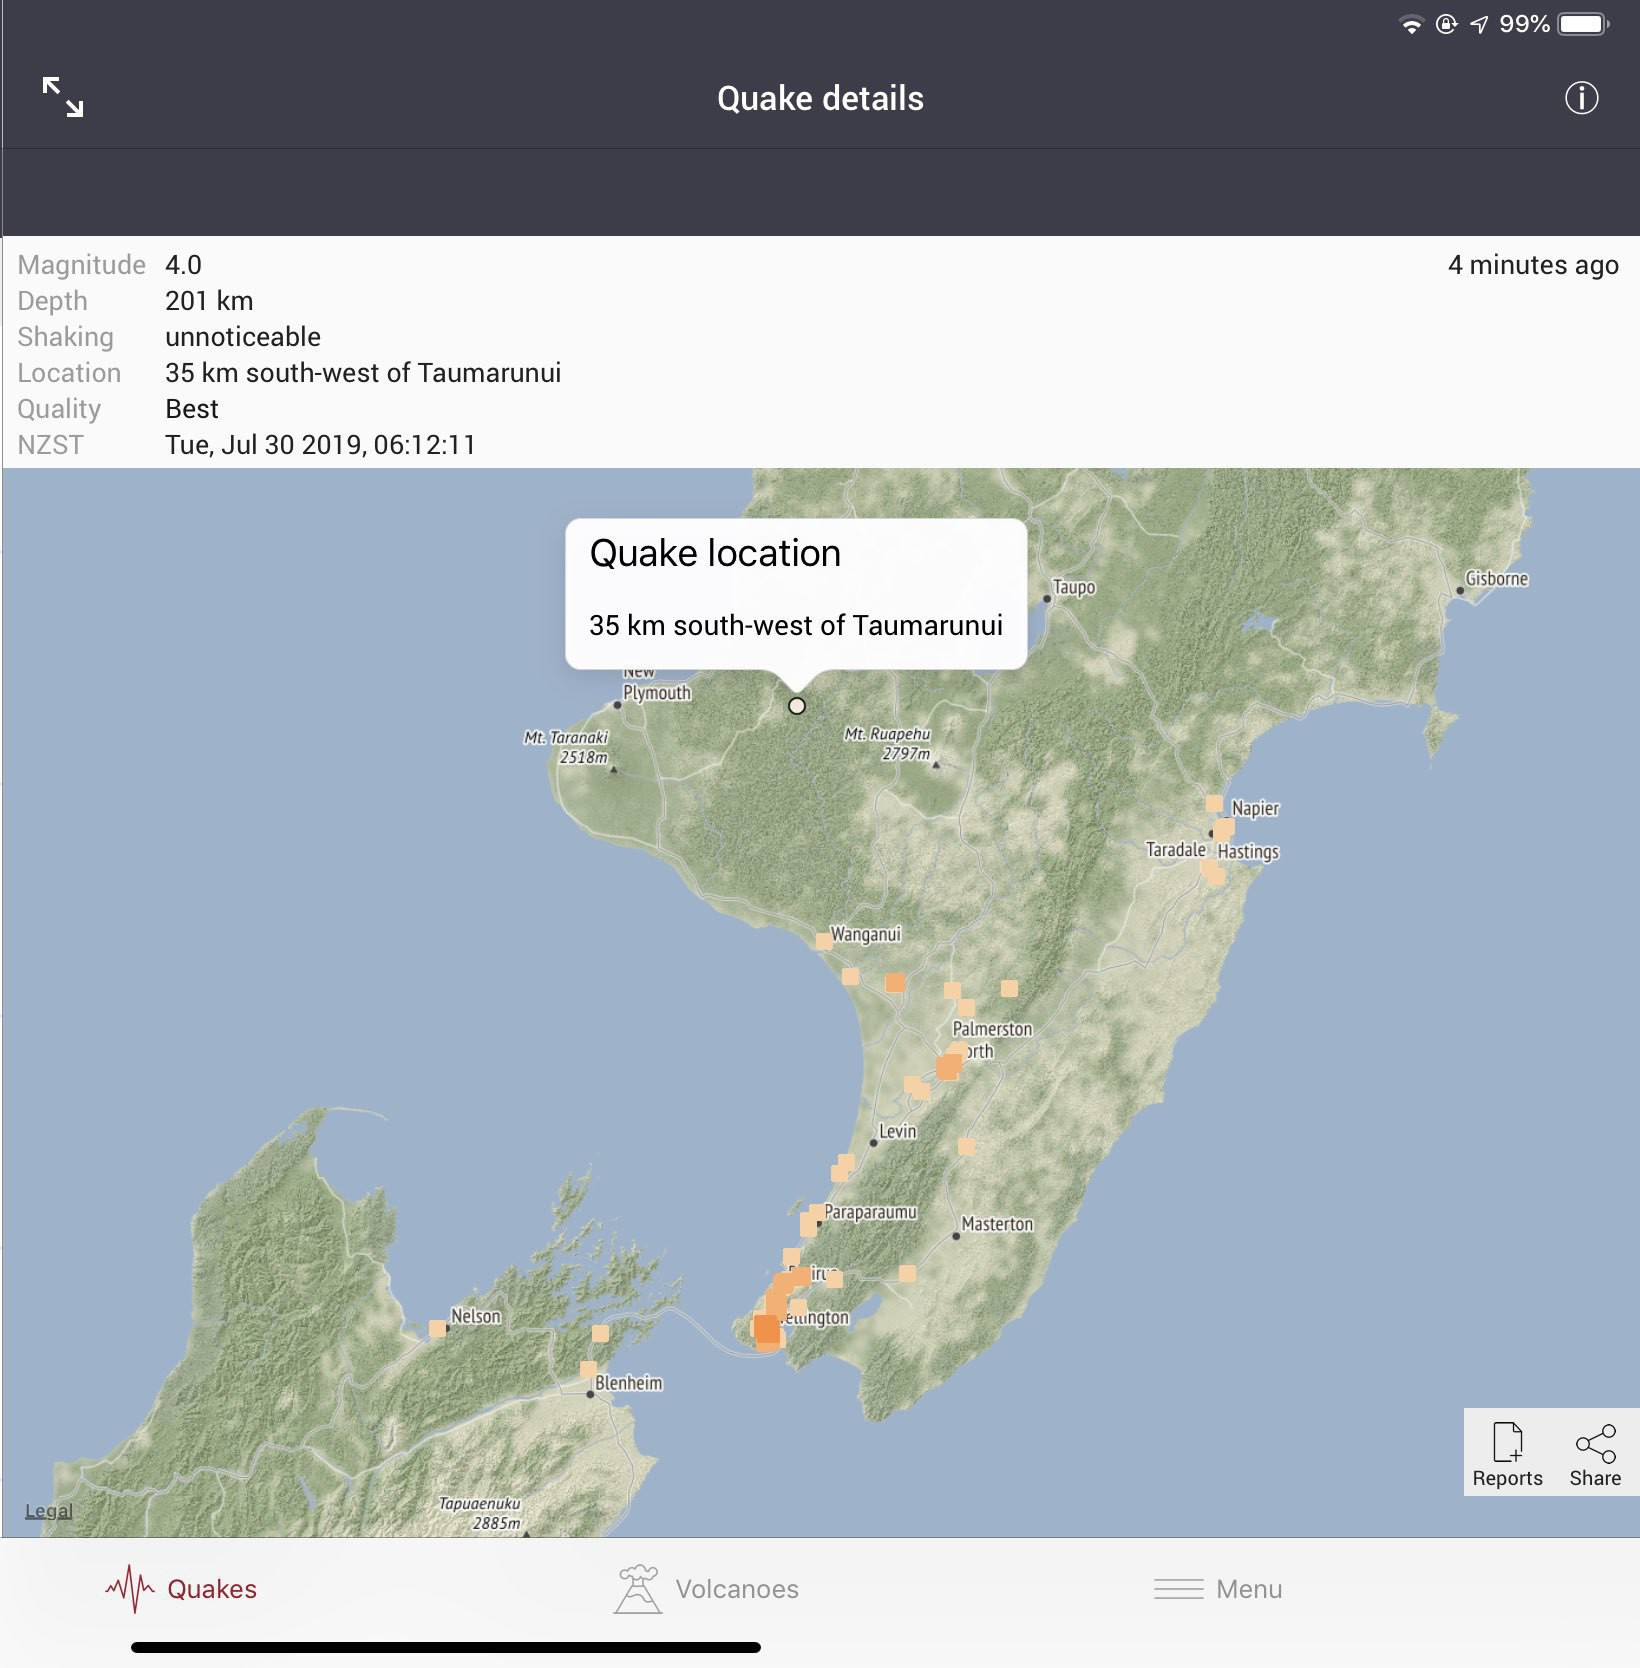 Earthquake info on Geonet.